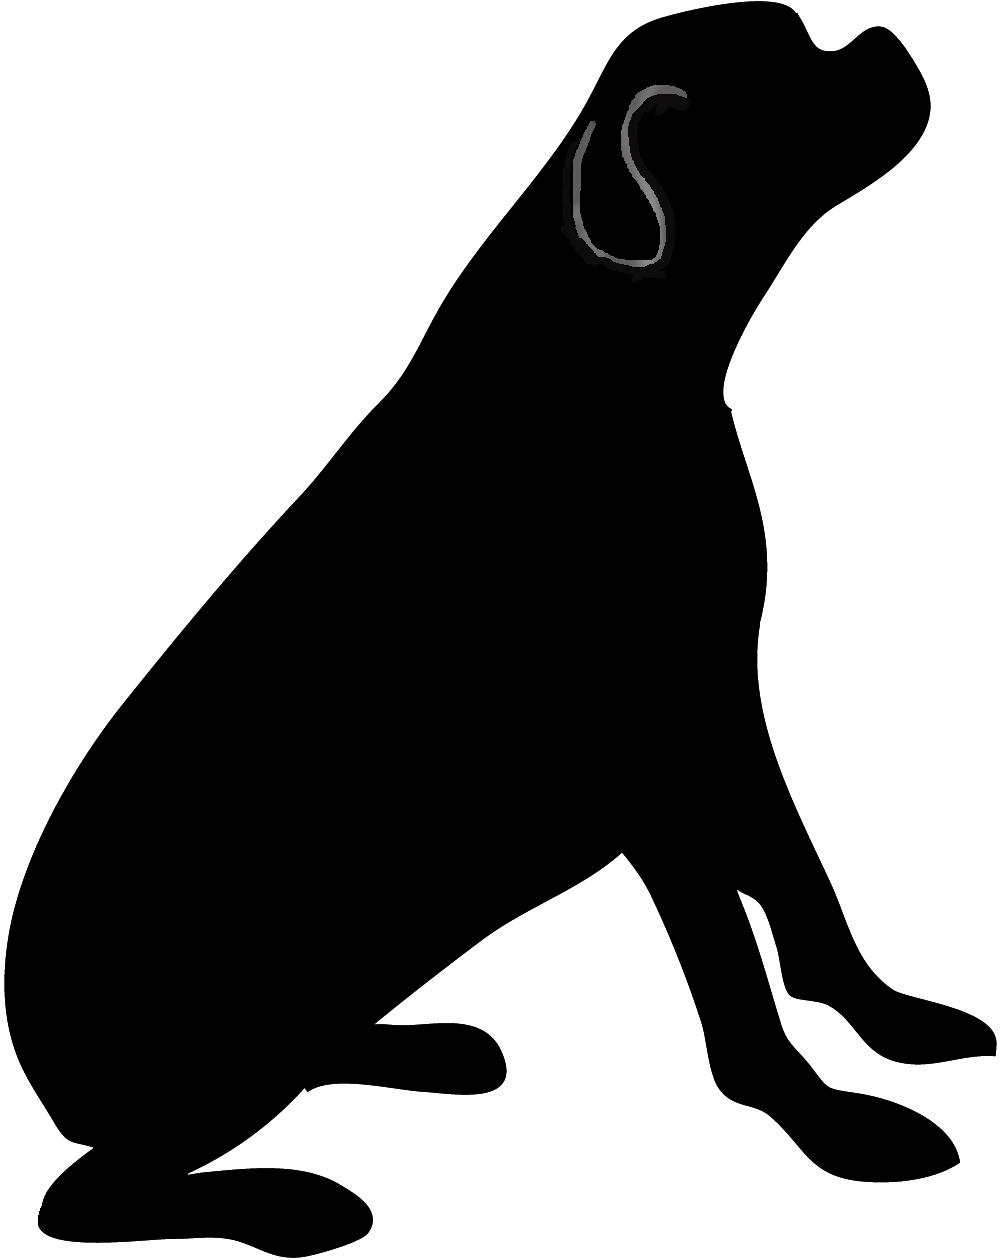 puppy silhouette dog silhouette wallpaper wallpapersafari silhouette puppy